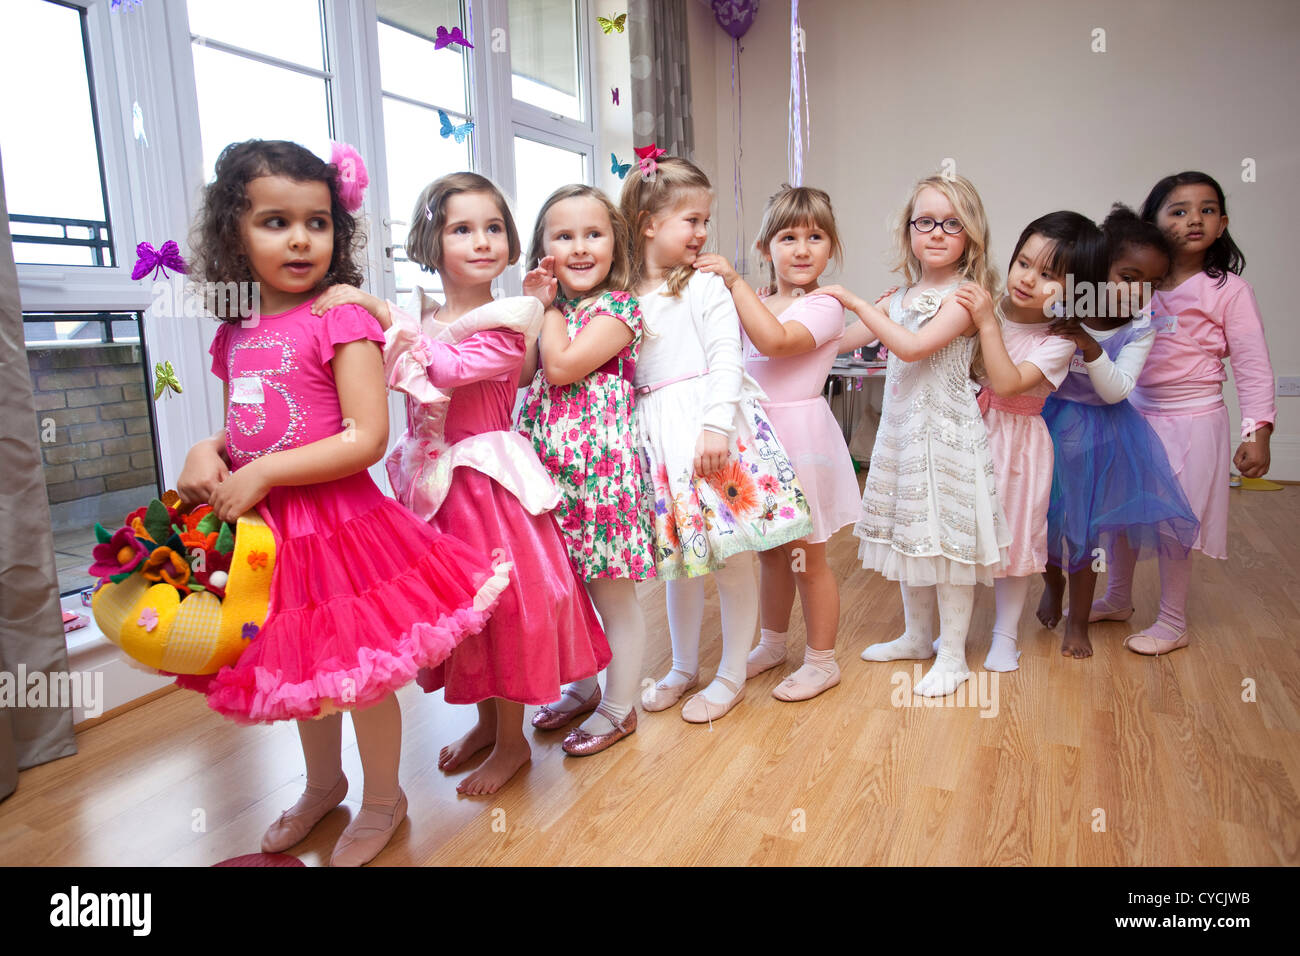 5 year old girls birthday party all dressed as in party clothes Stock Photo